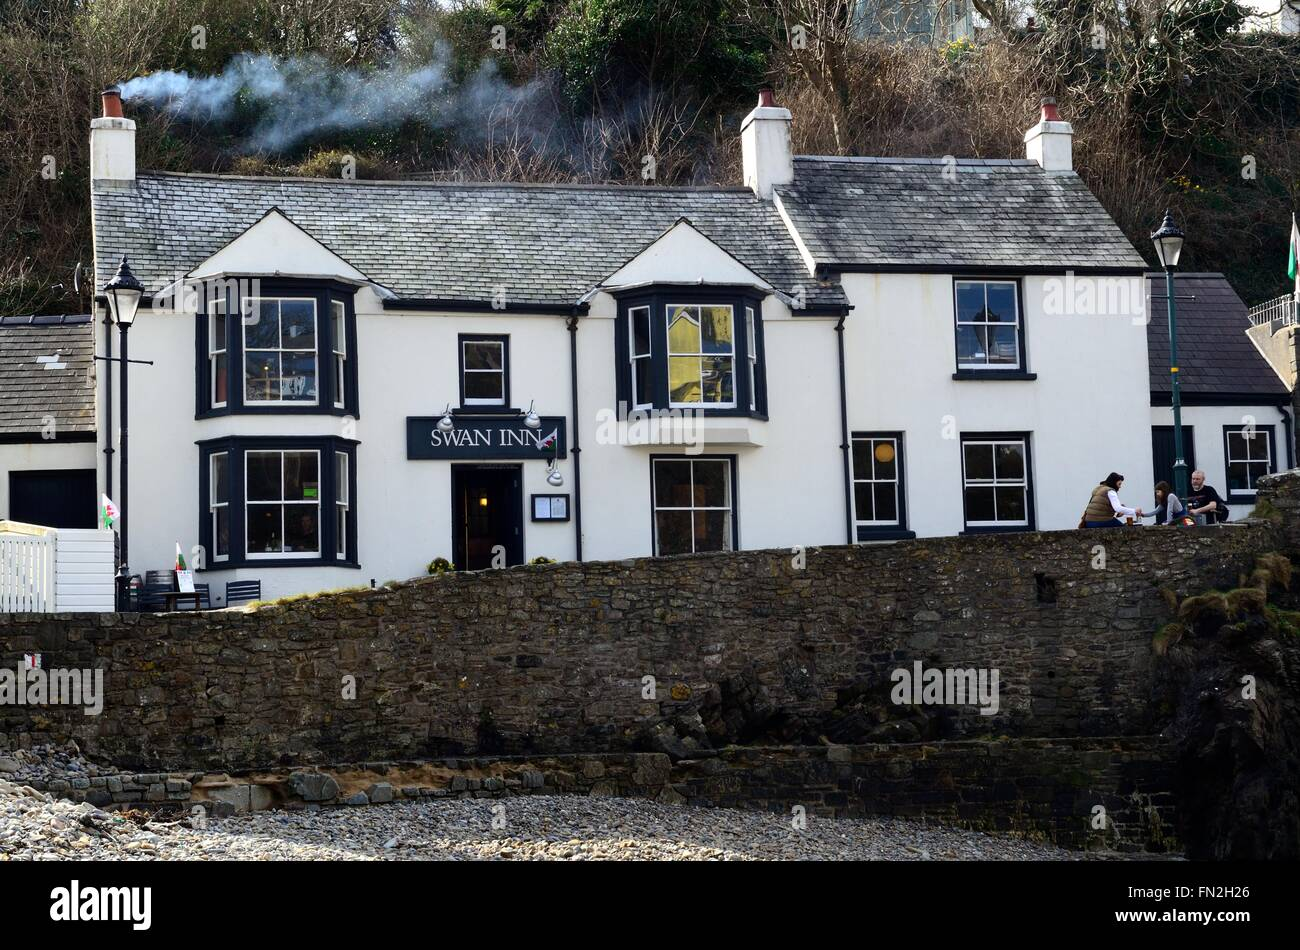 Swan Inn overlooking the beach at Little haven Pembrokeshire Coast National                                     - Stock Image